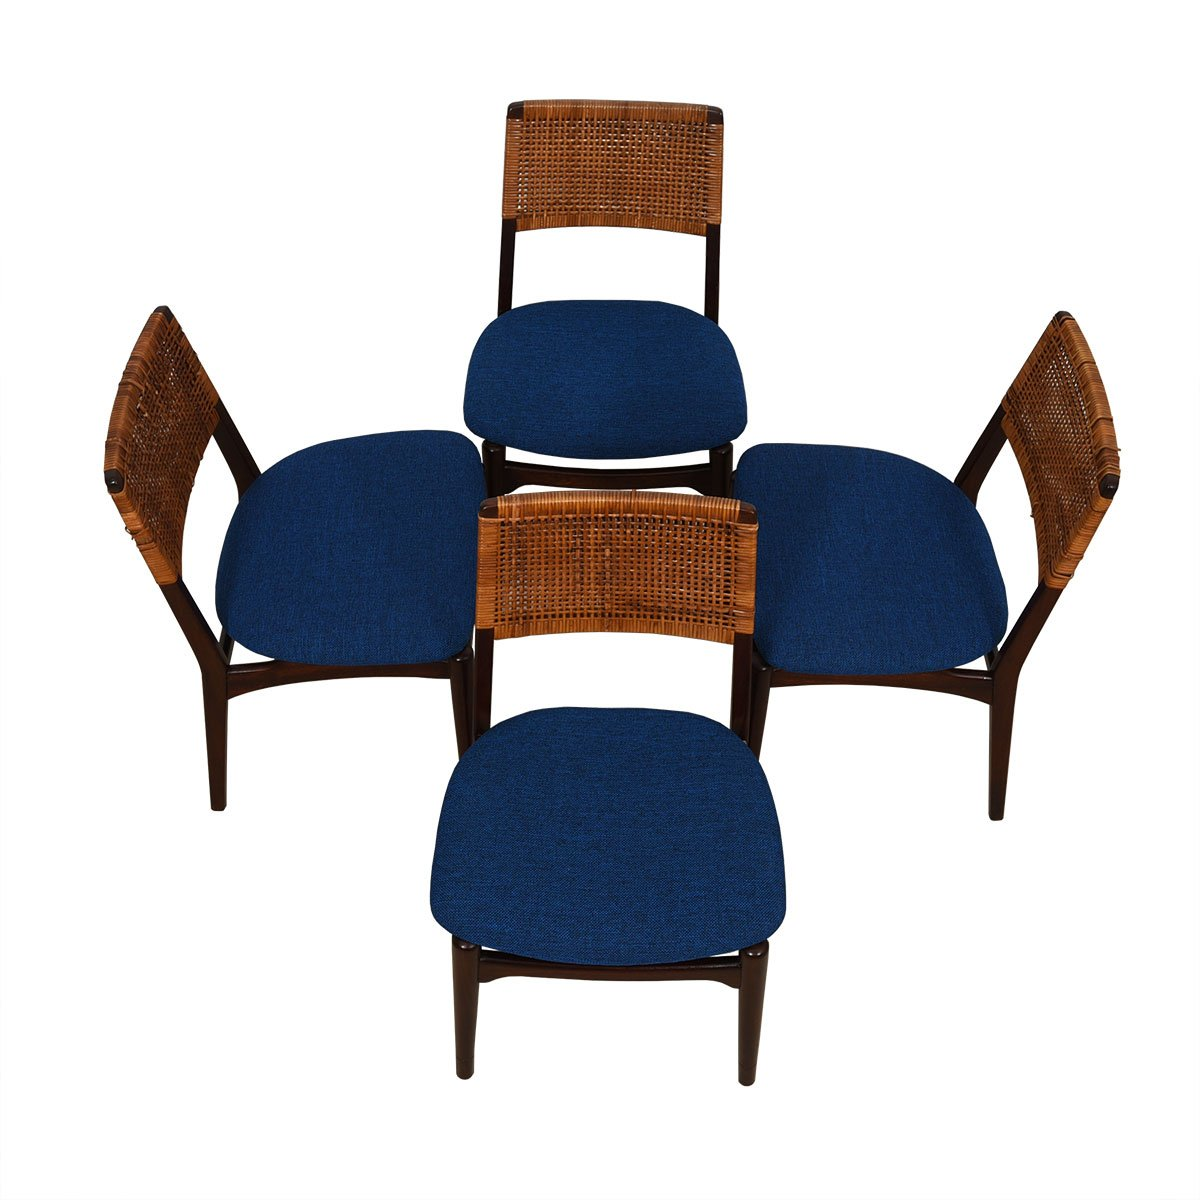 Set of 4 Petite 1950's Dining Chairs w/ New Upholstery.